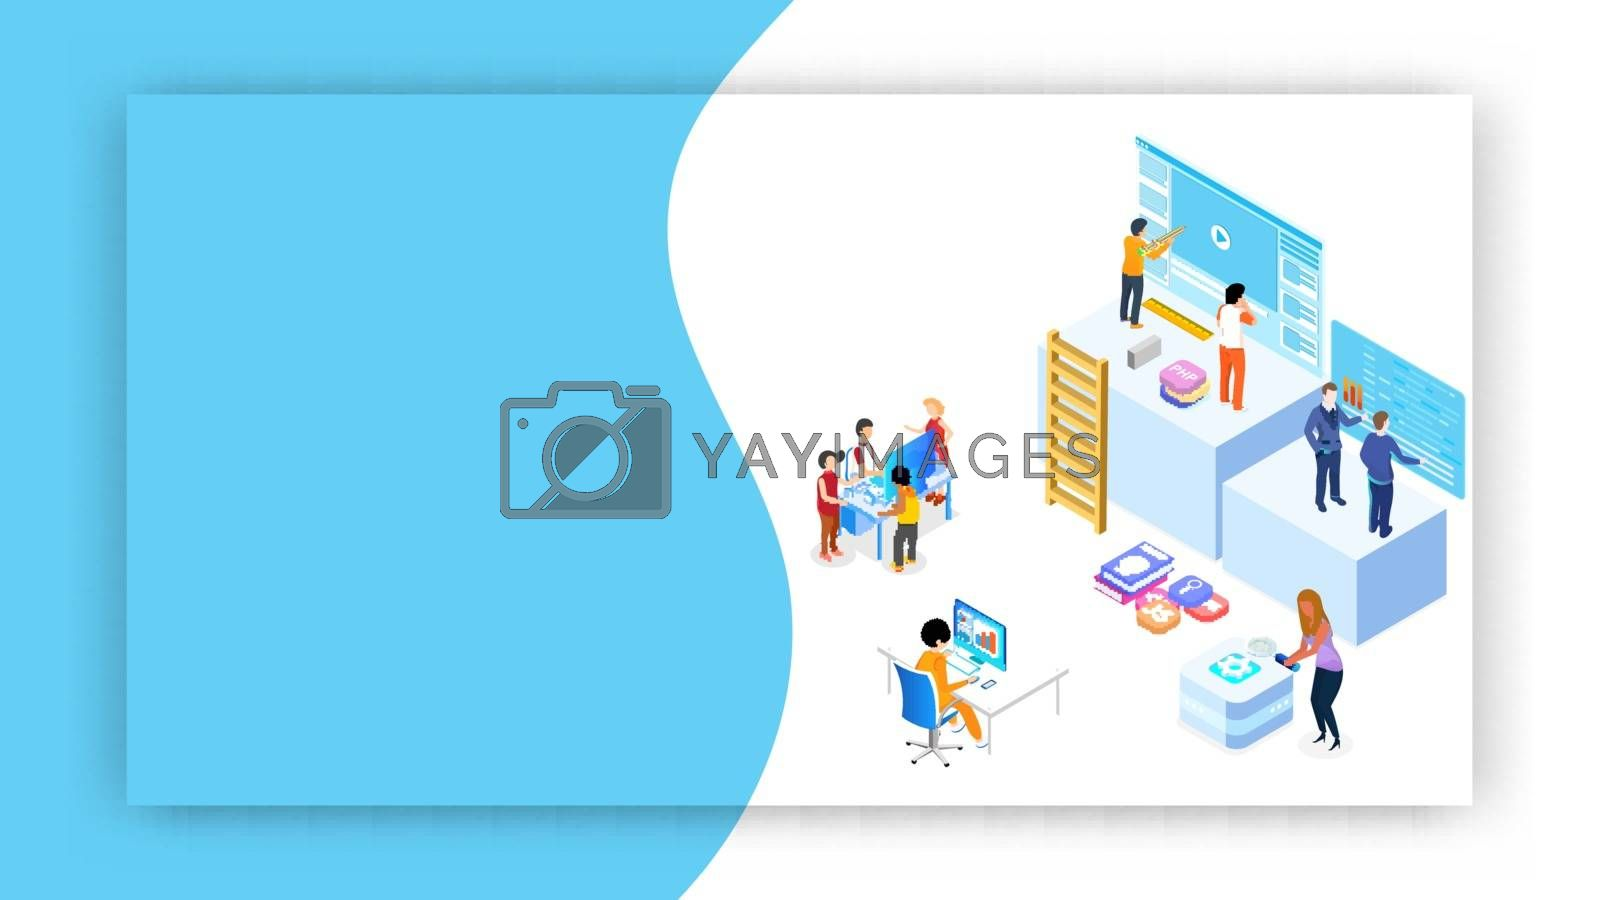 Miniature web developers maintaining the website or analysts analysis data on abstract background for Teamwork concept based isometric design.